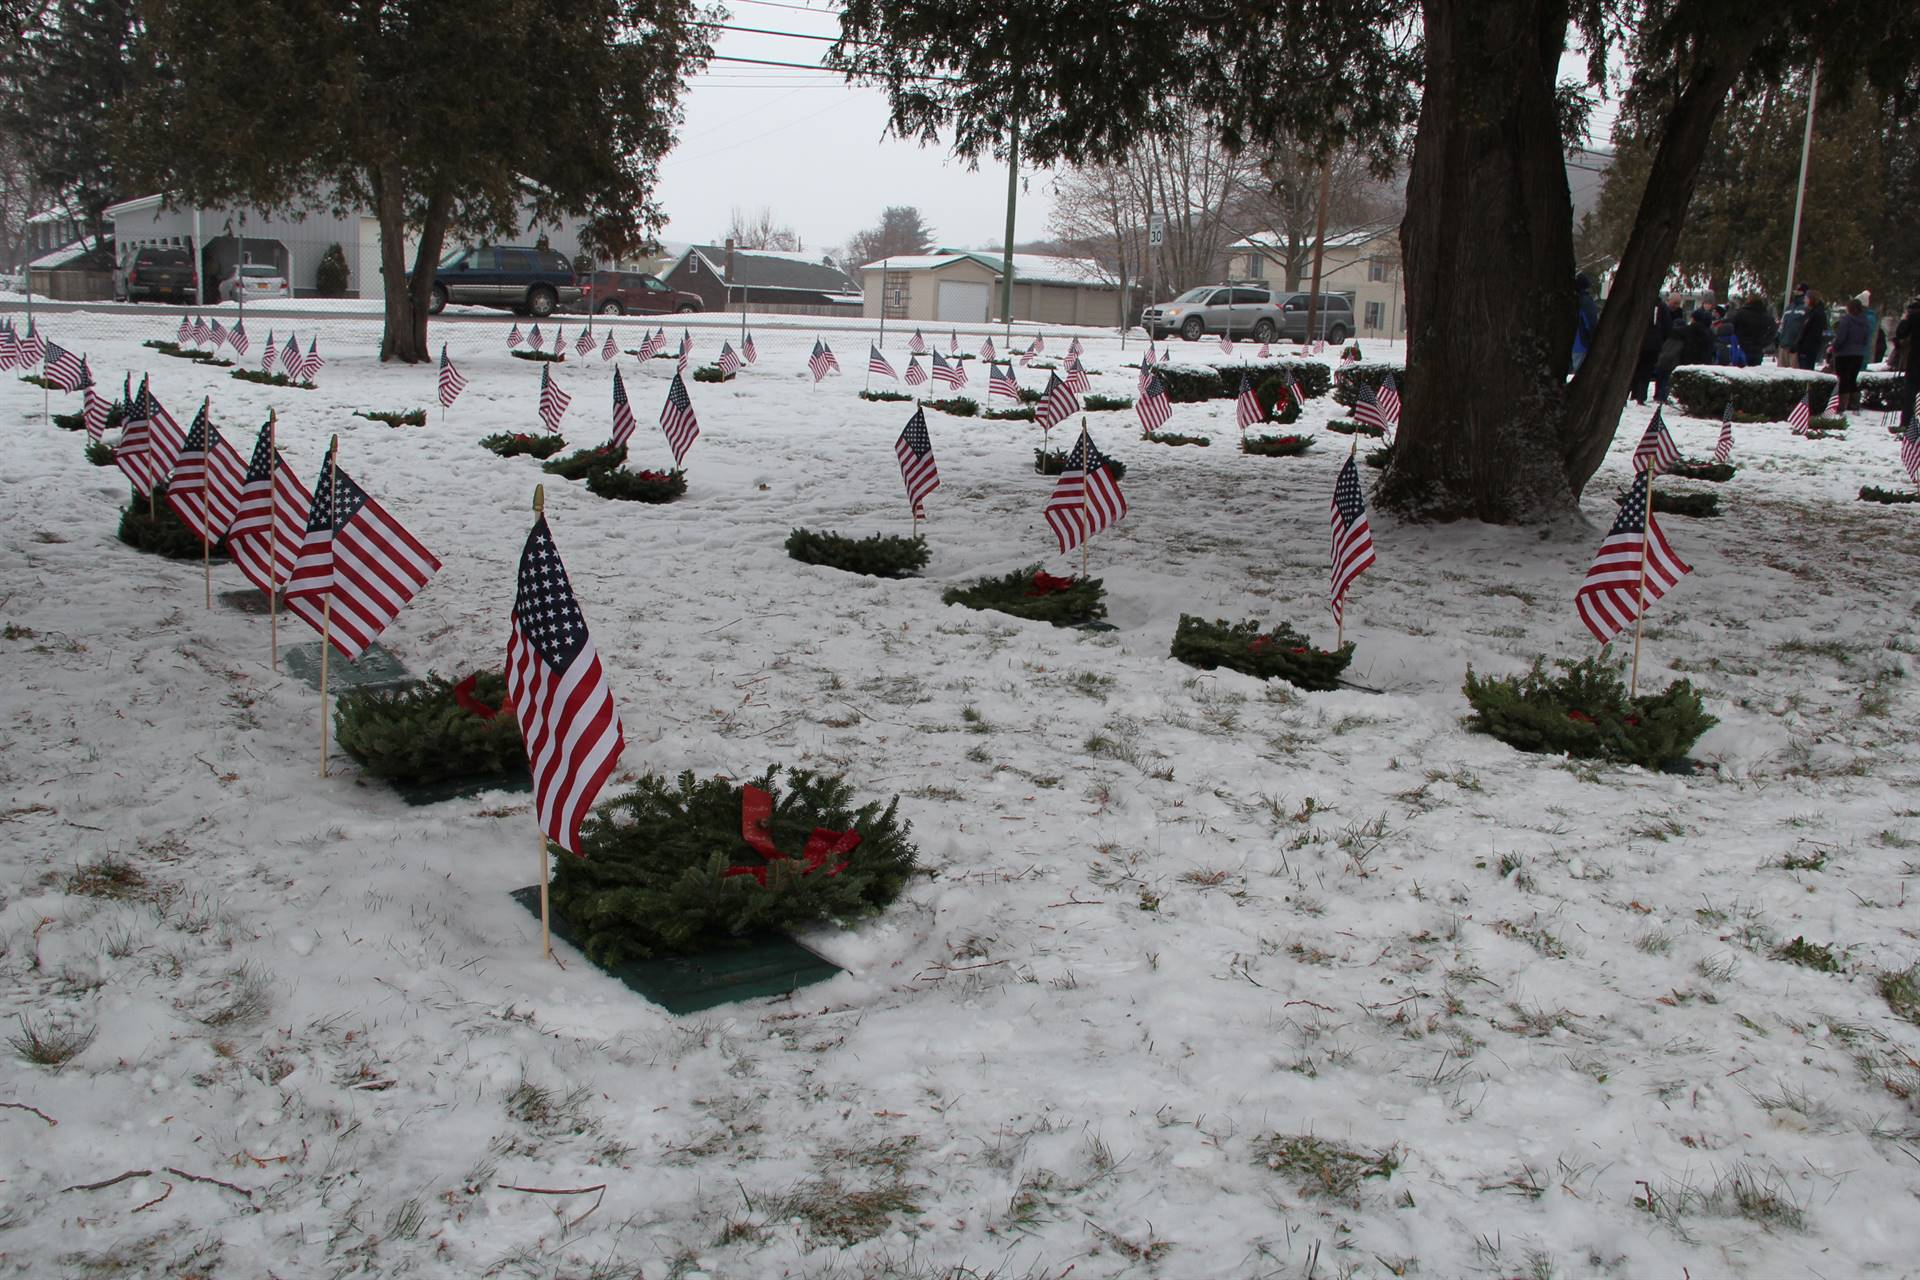 medium shot of graves with people standing in background